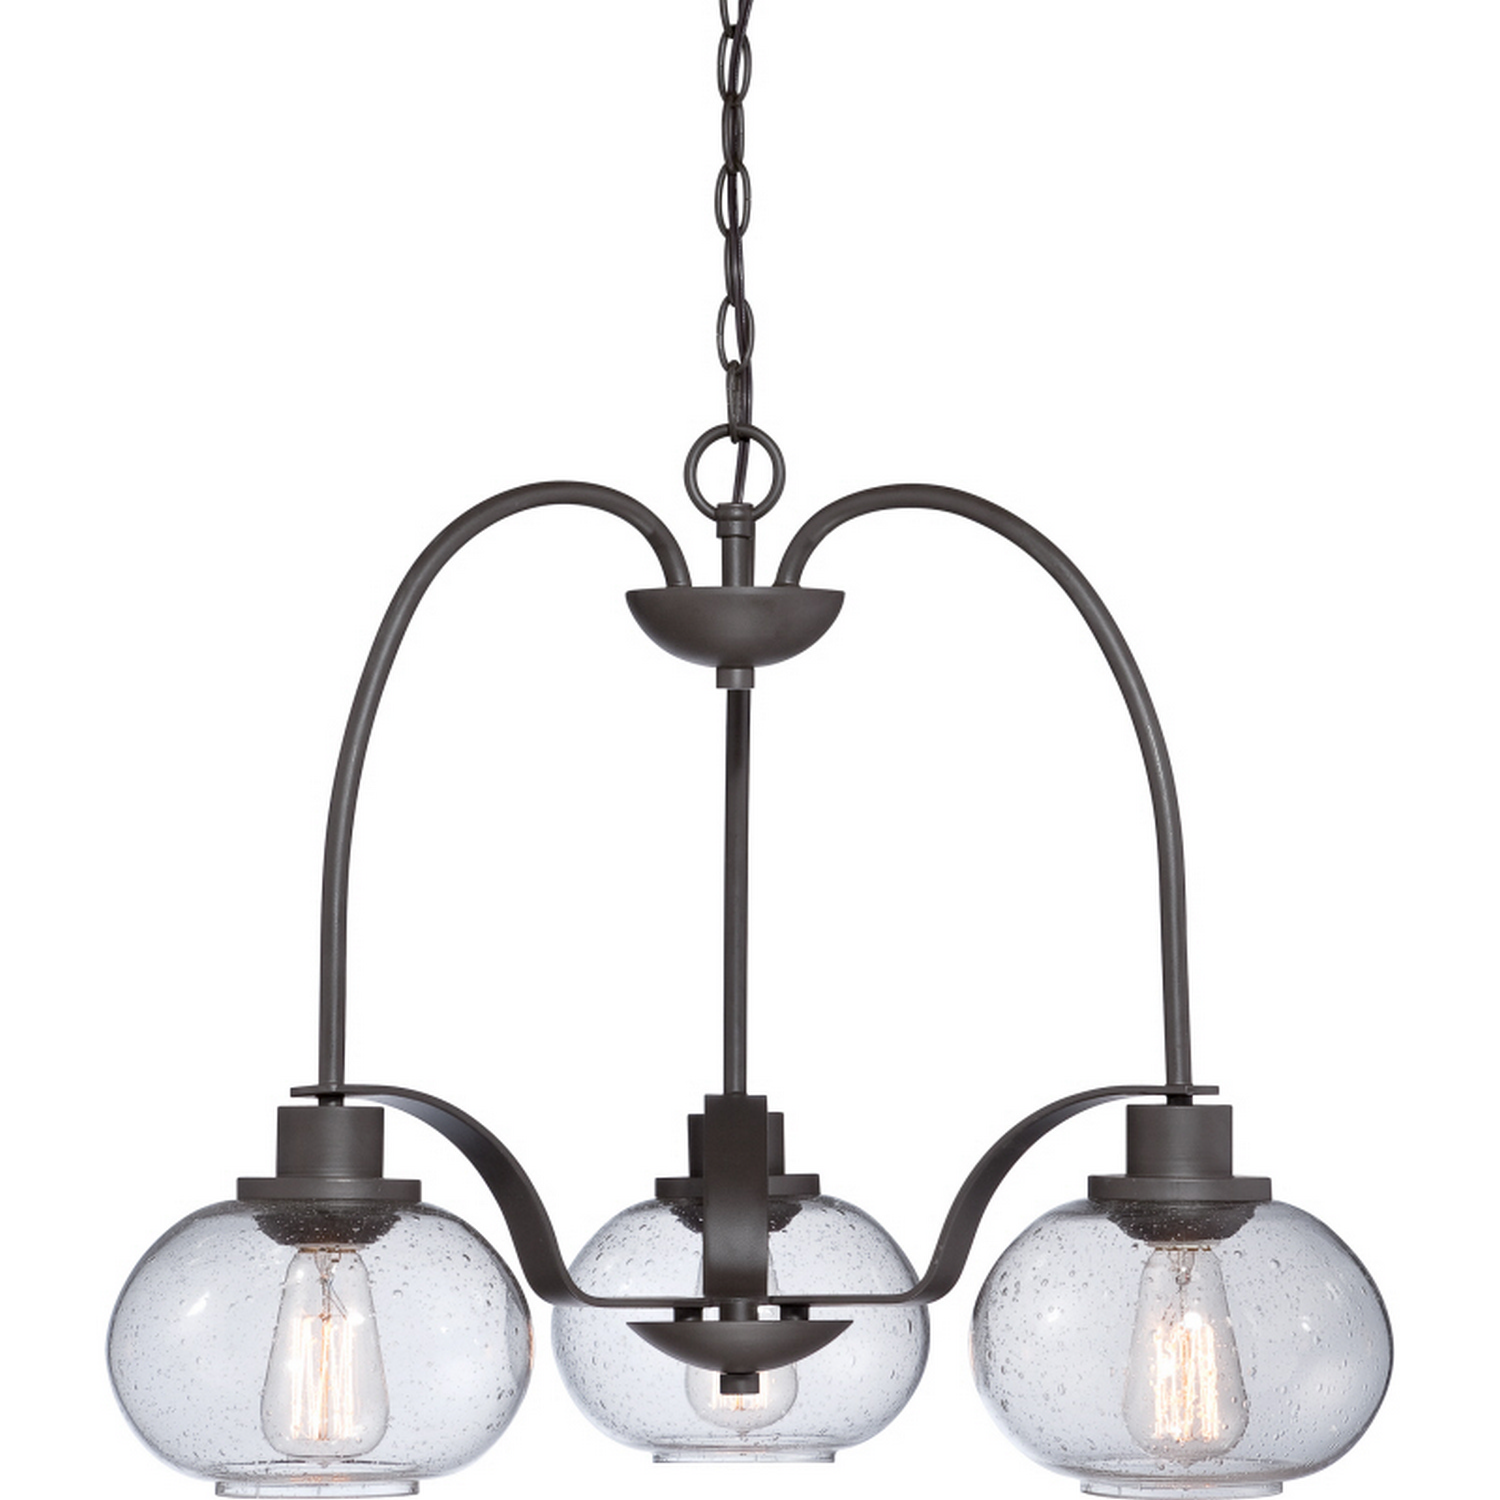 Best American Craftsman Style Lighting Reviews Ratings Prices